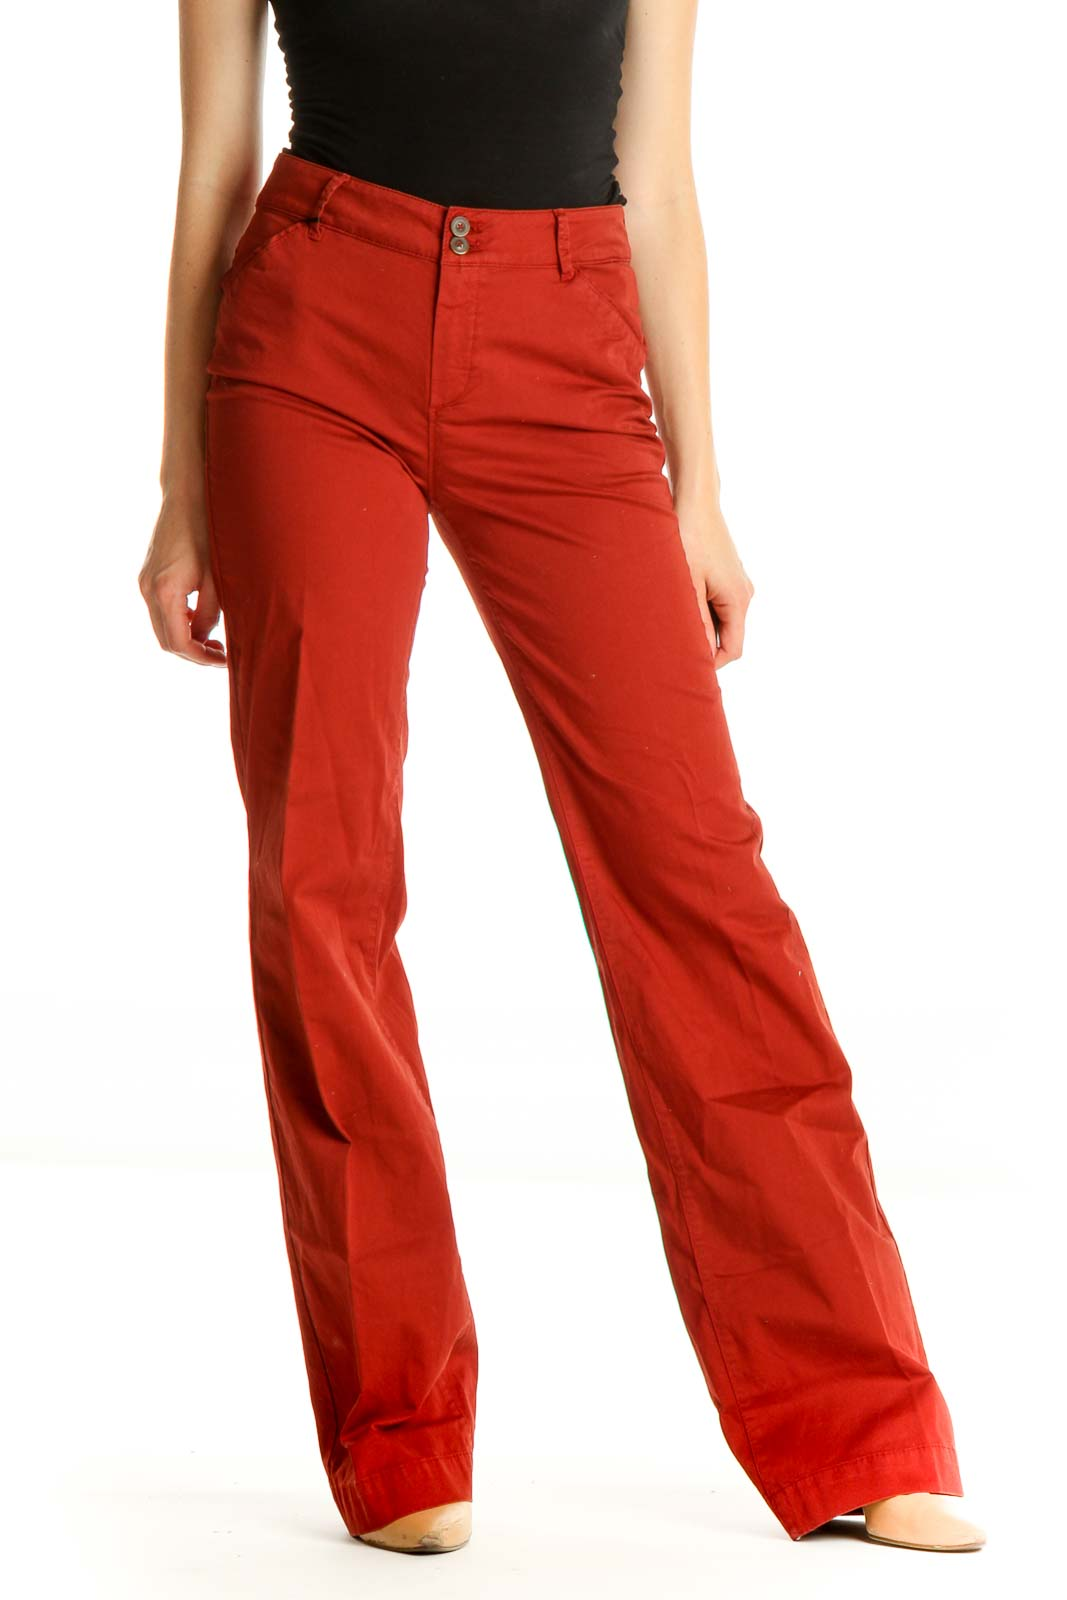 Red Solid Chic Trousers Front